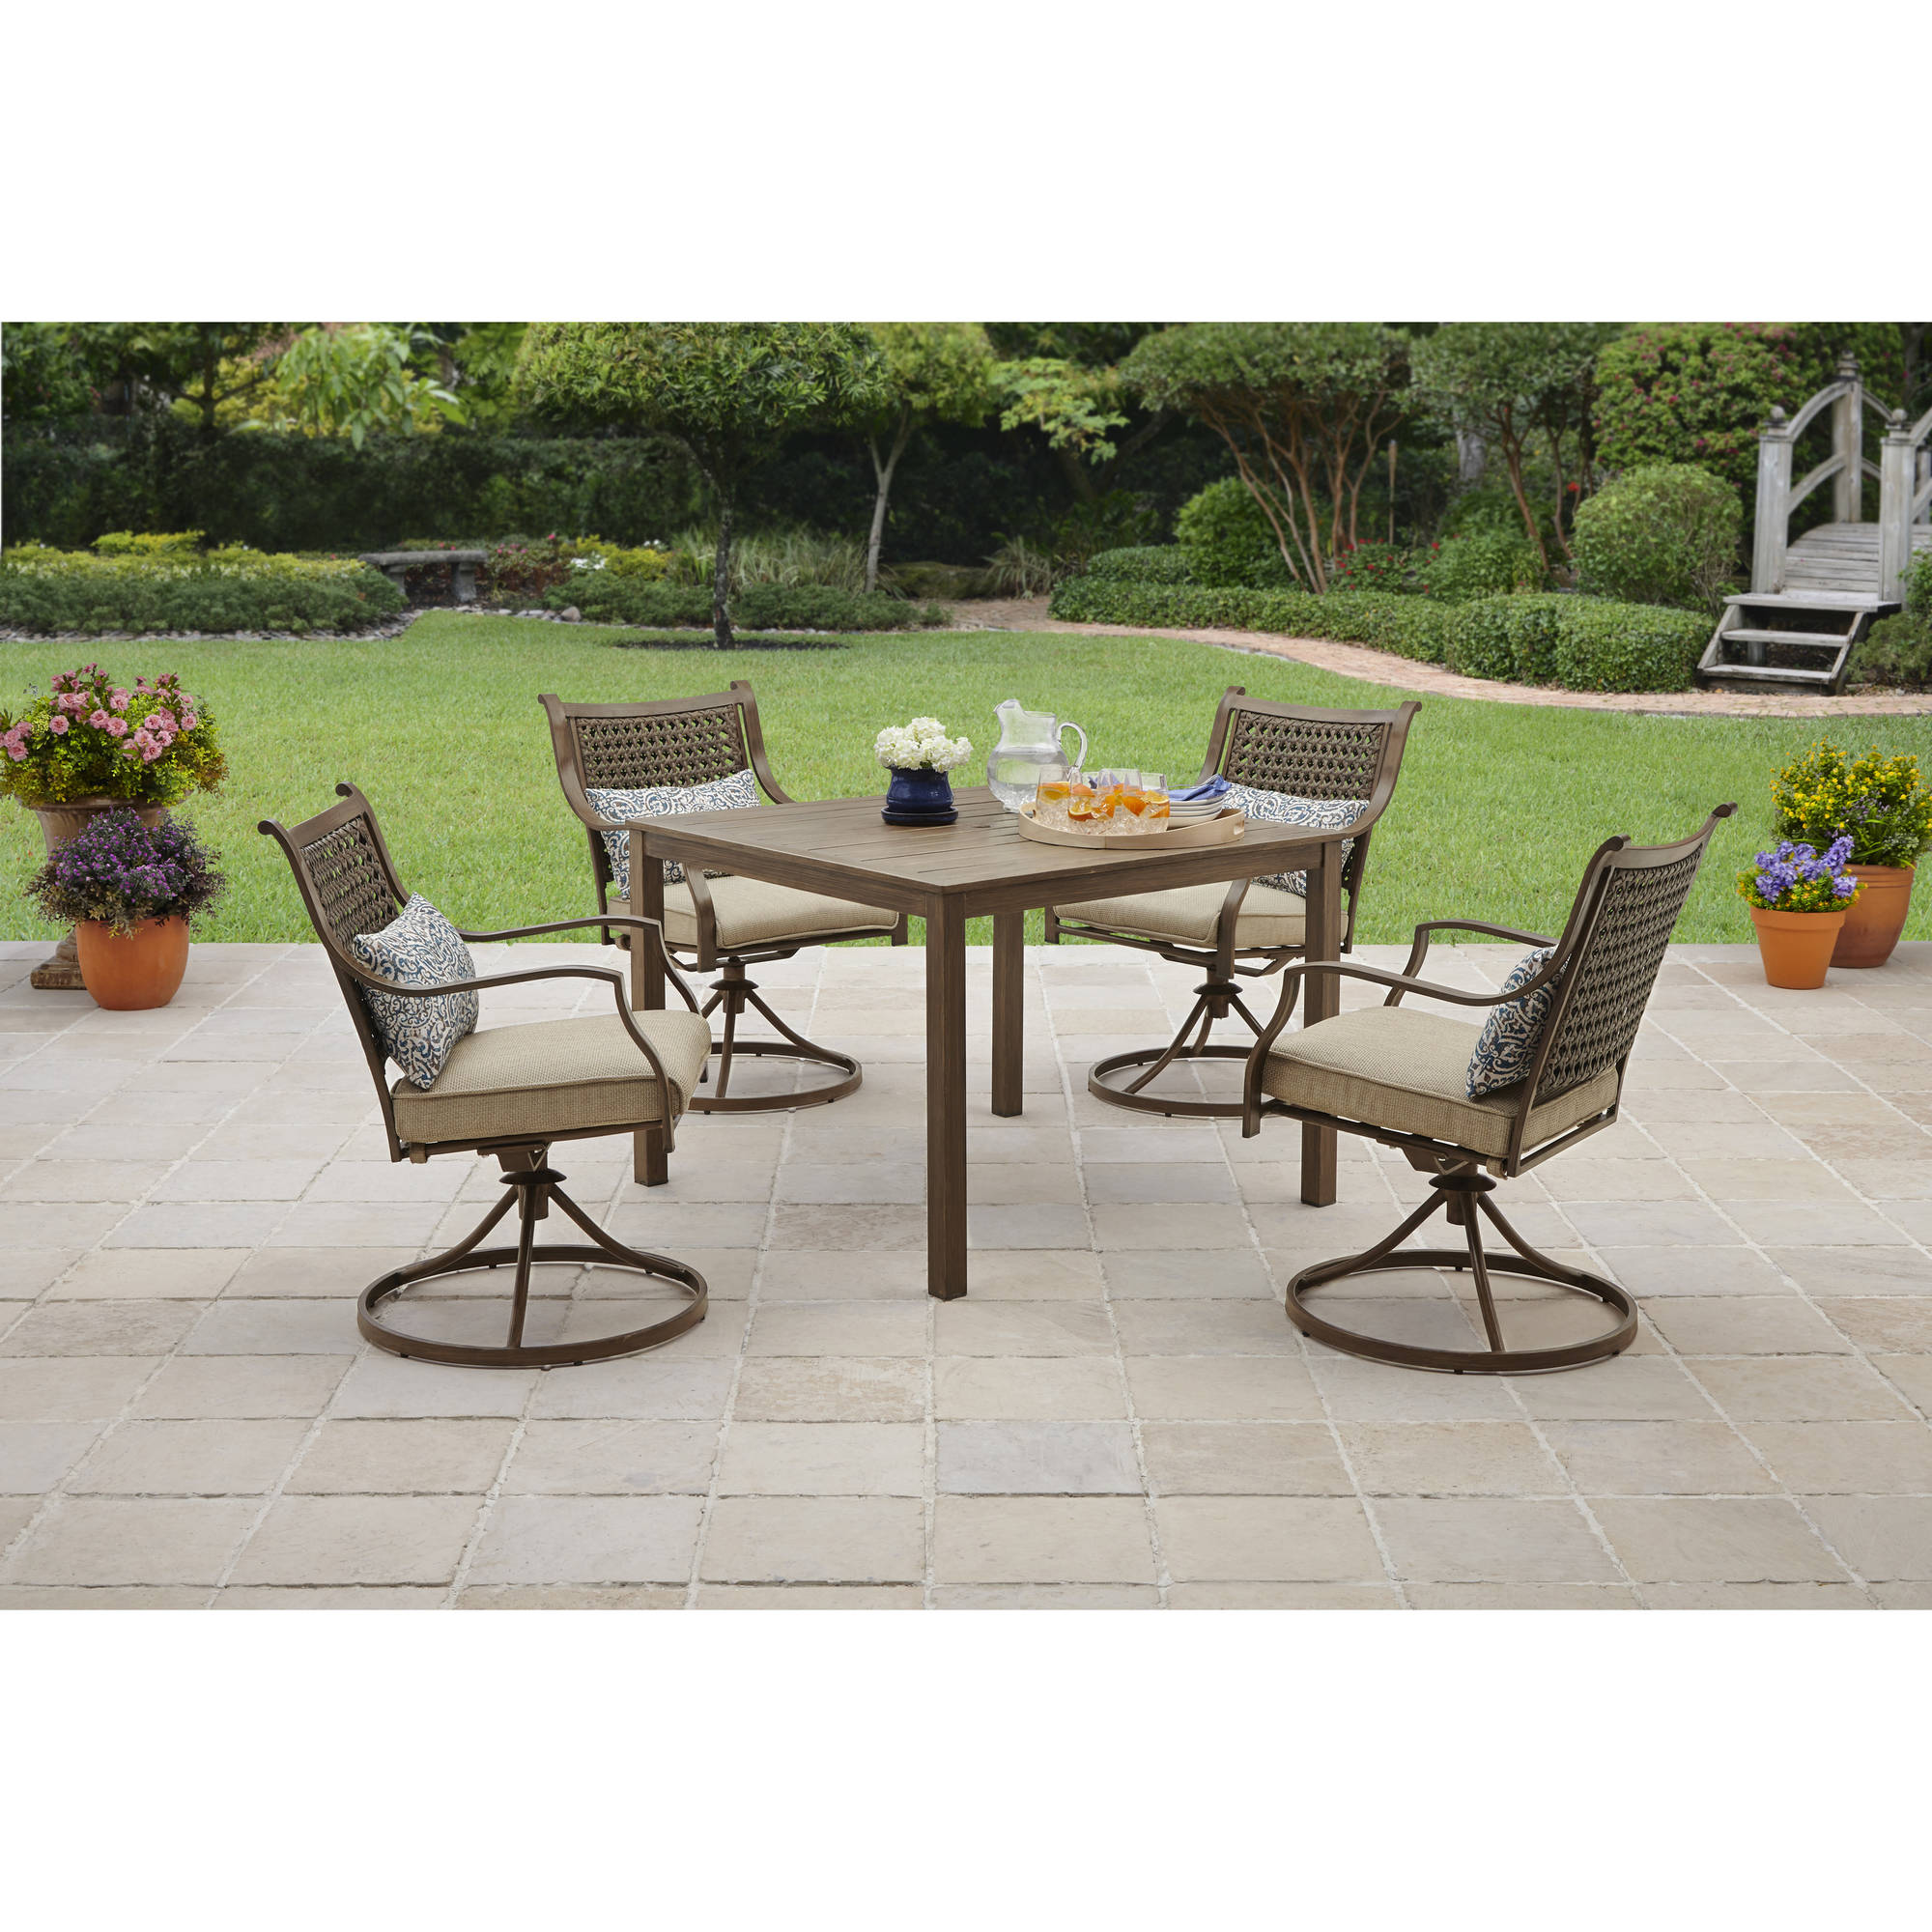 Better Homes and Gardens Lynnhaven Park 5-Piece Outdoor Dining Set